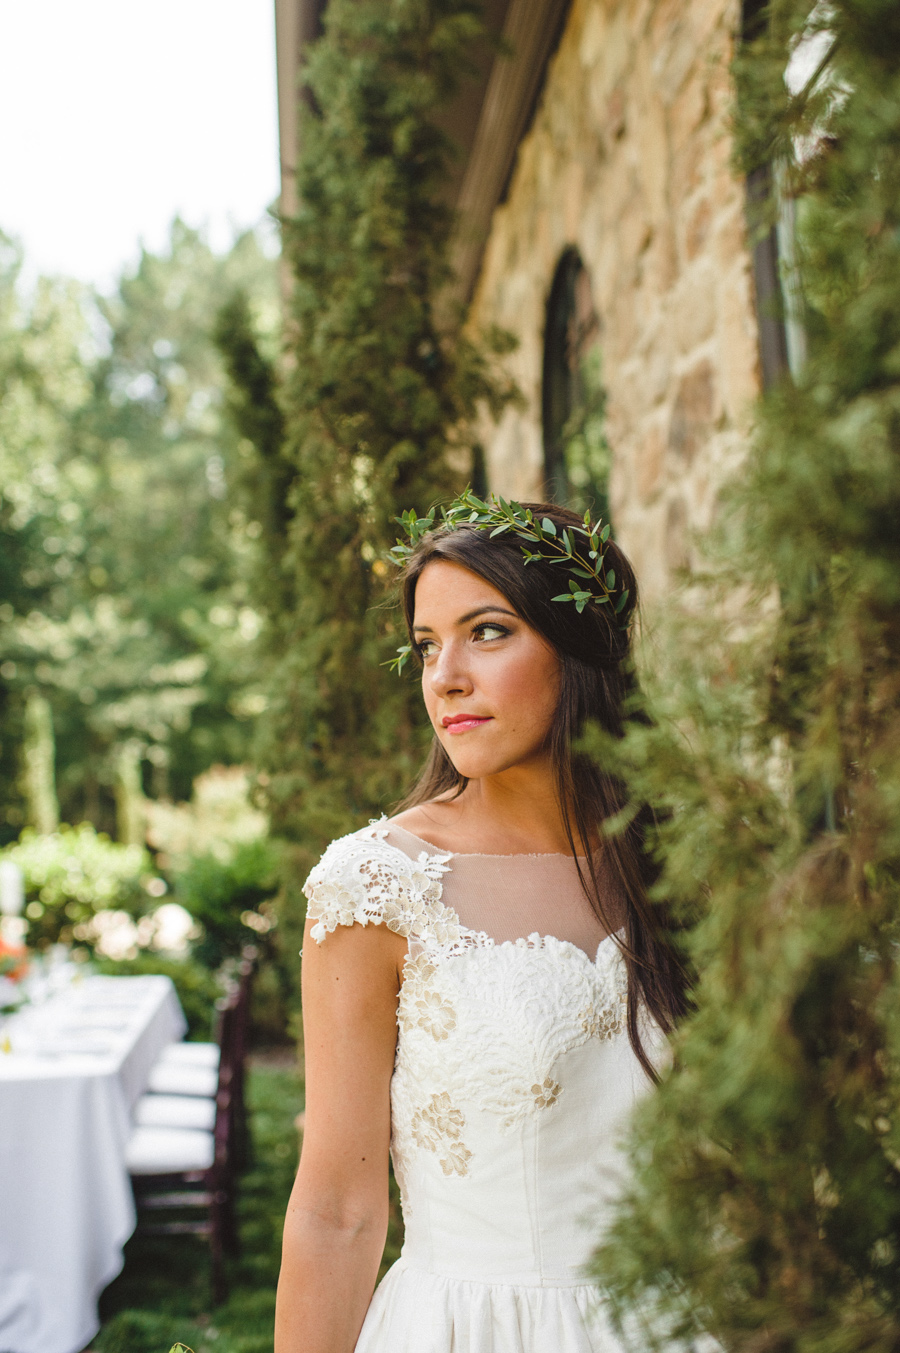 Italian garden wedding ideas elizabeth anne designs the for Garden designs by elizabeth